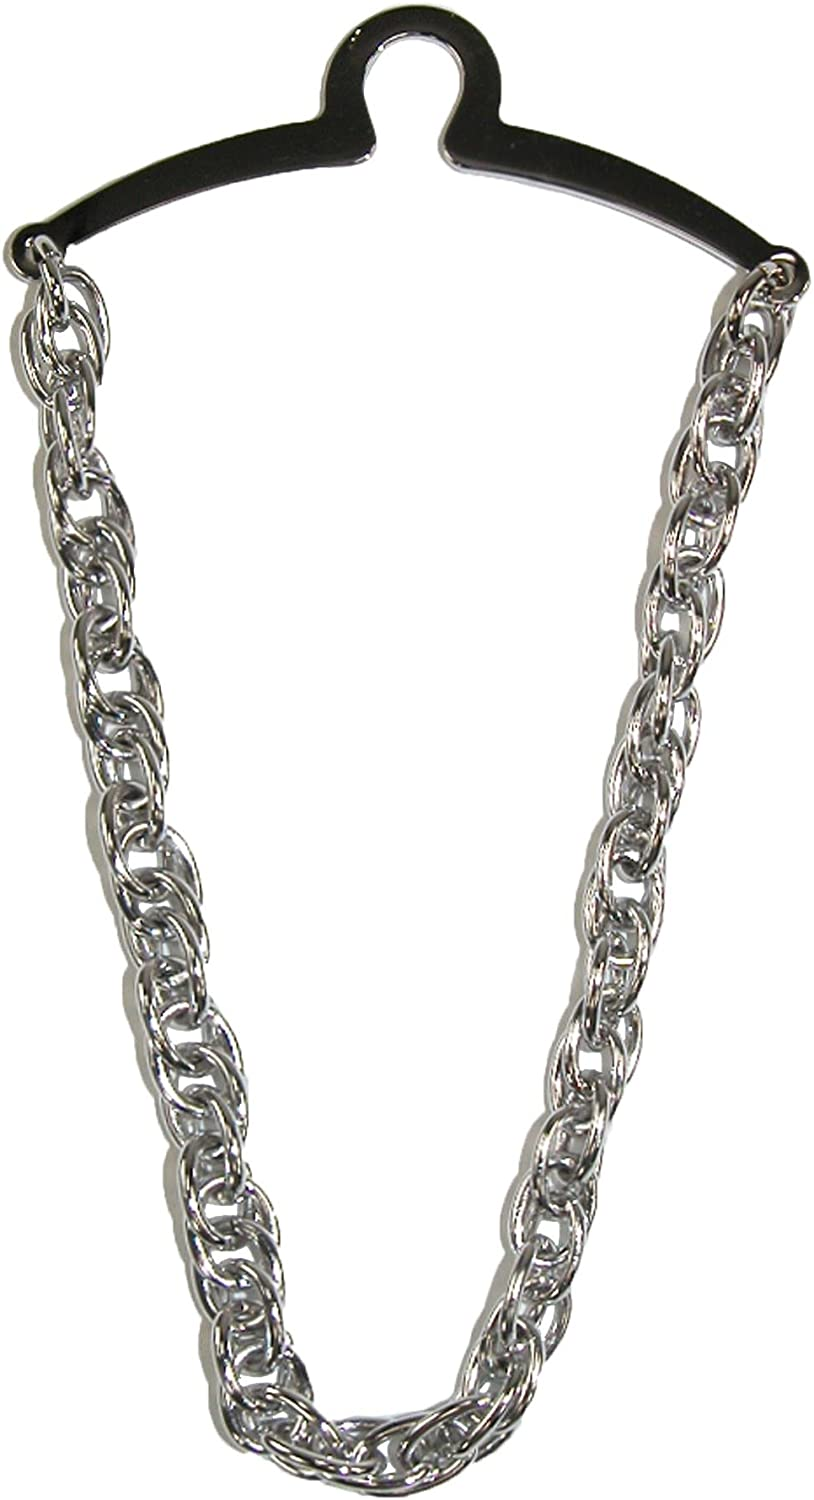 Competition Inc. Men's Double Loop Tie Chain, Silver